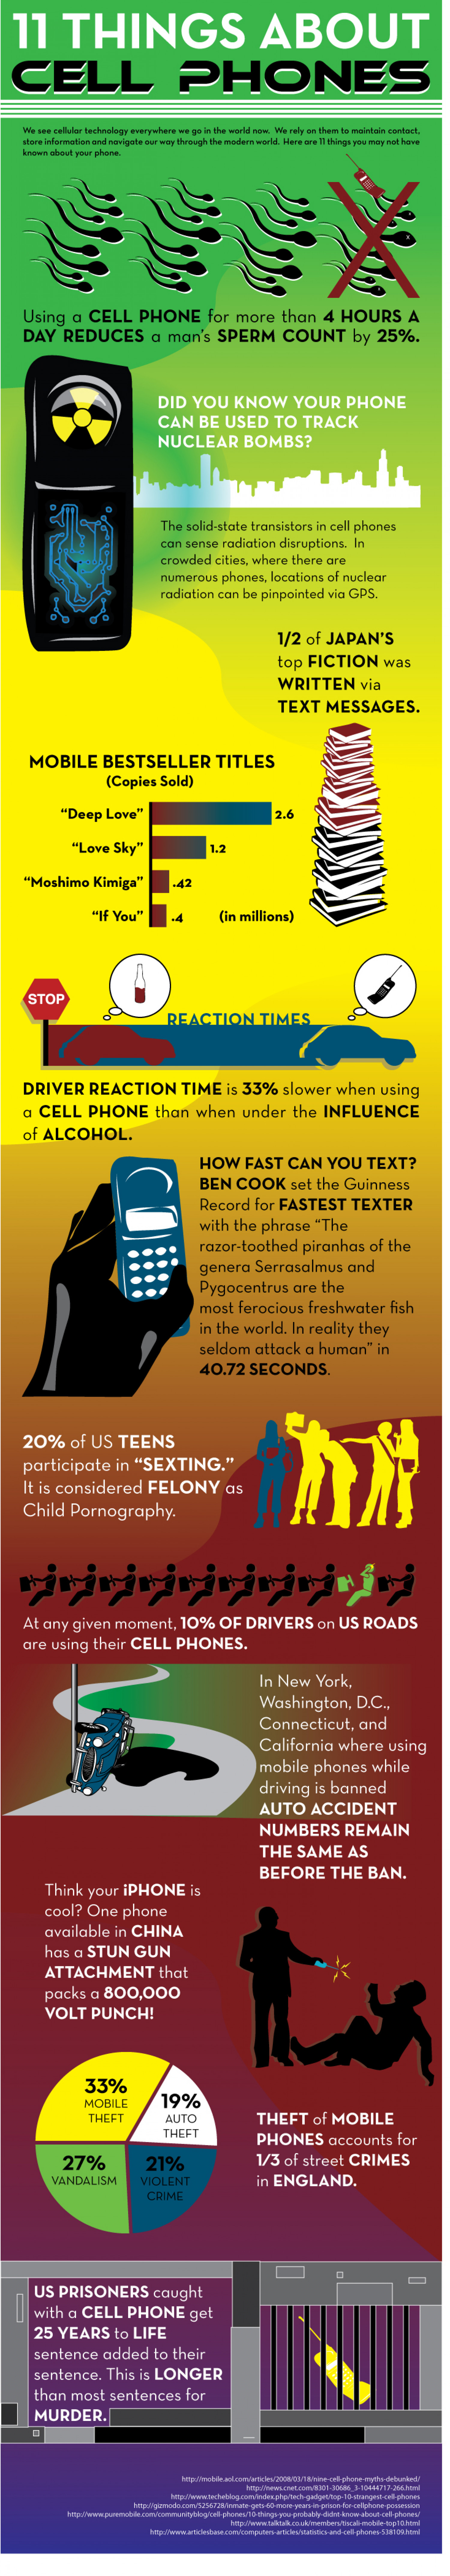 11 Things About Cell Phones Infographic